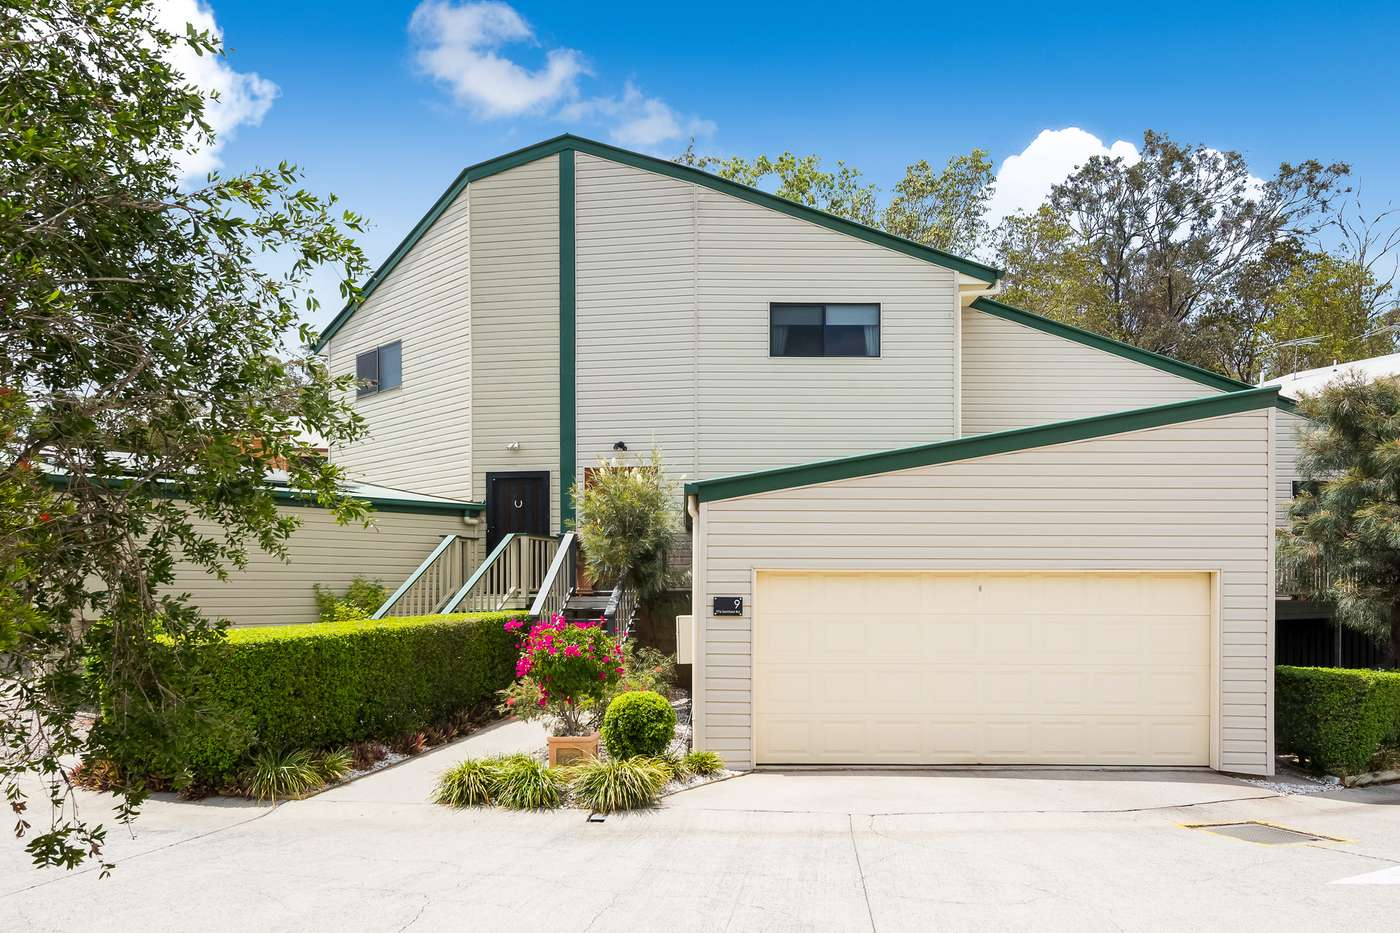 Main view of Homely house listing, 9/976 Samford Road, Keperra, QLD 4054